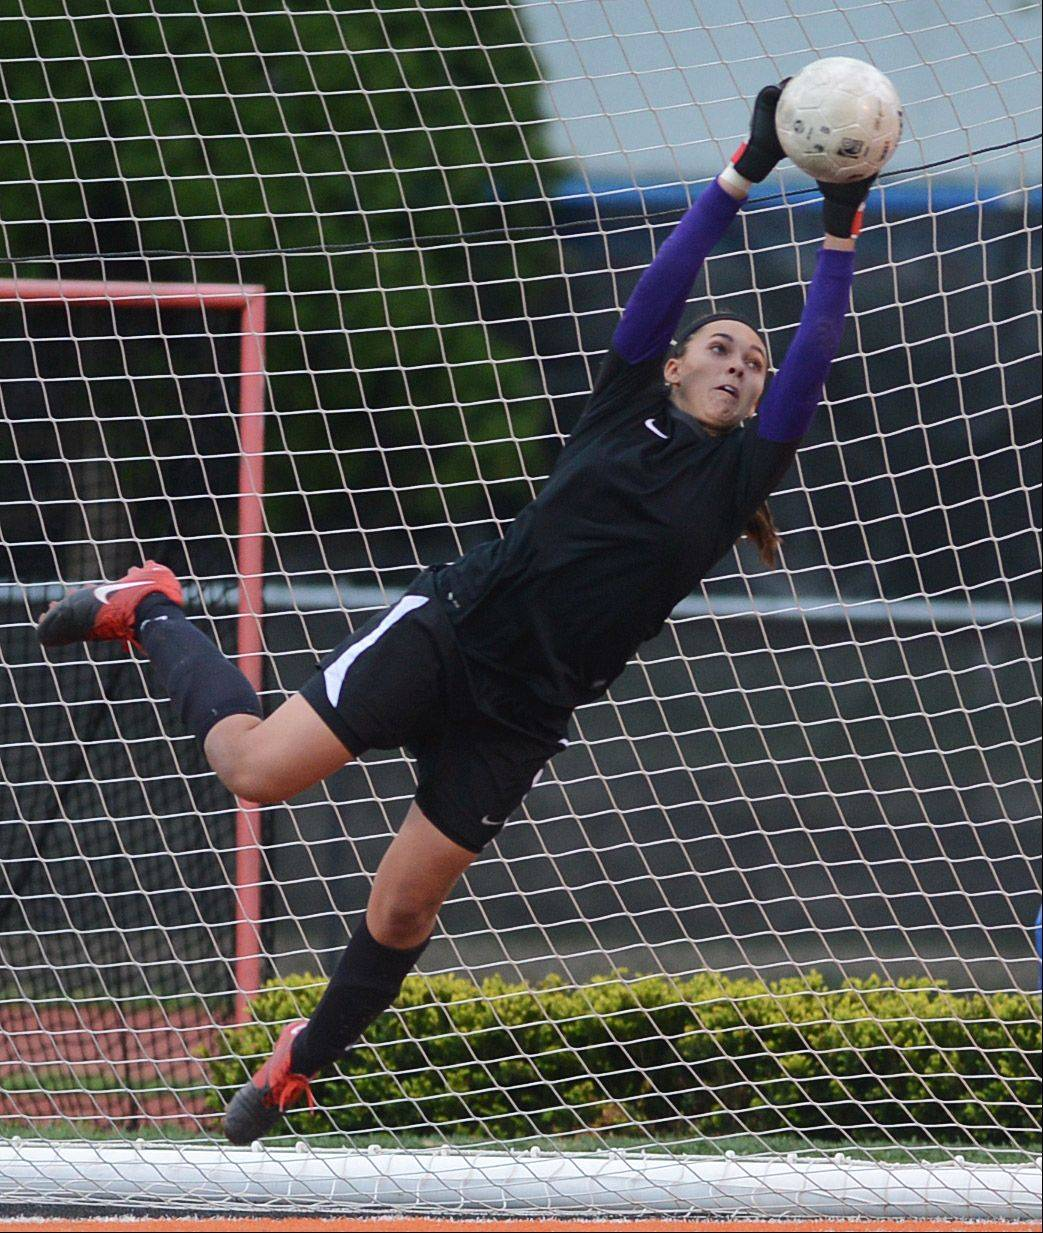 Mundelein goalkeeper Brooke Dennis makes a leaping save against Buffalo Grove during Friday's Class 3A girls soccer regional final at Libertyville High School.